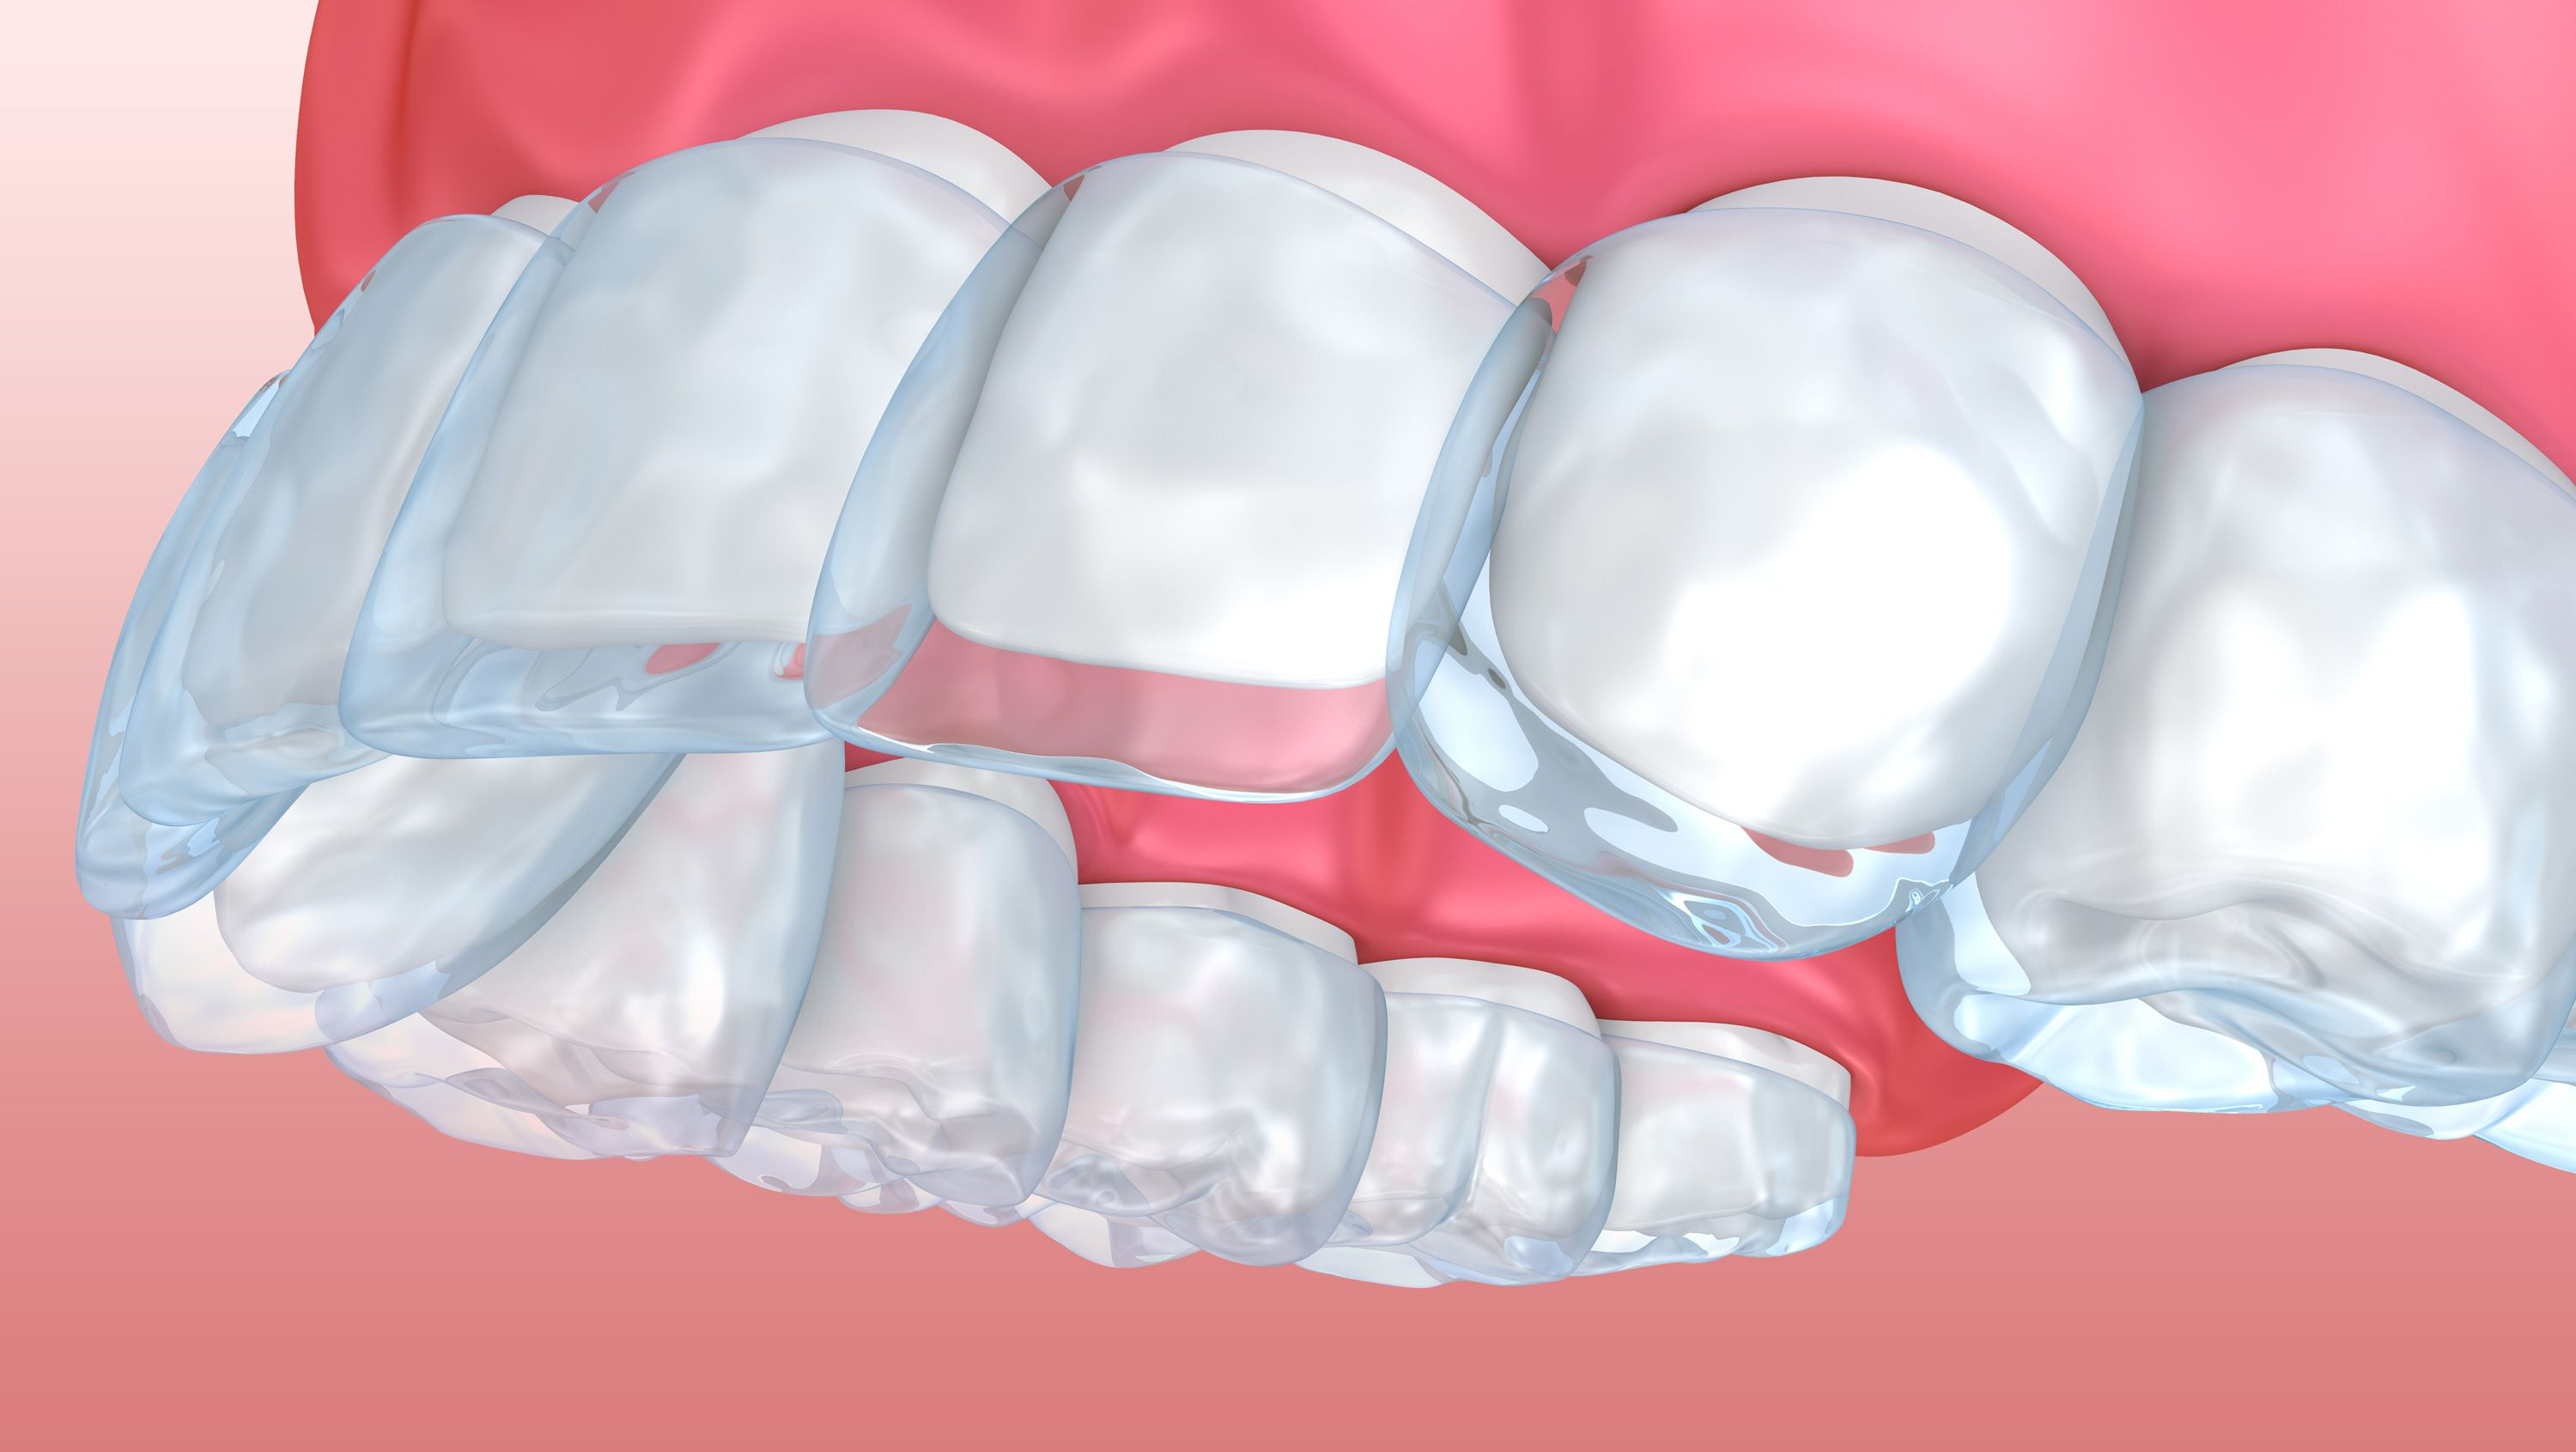 Digital image of Invisalign® tray being placed over teeth